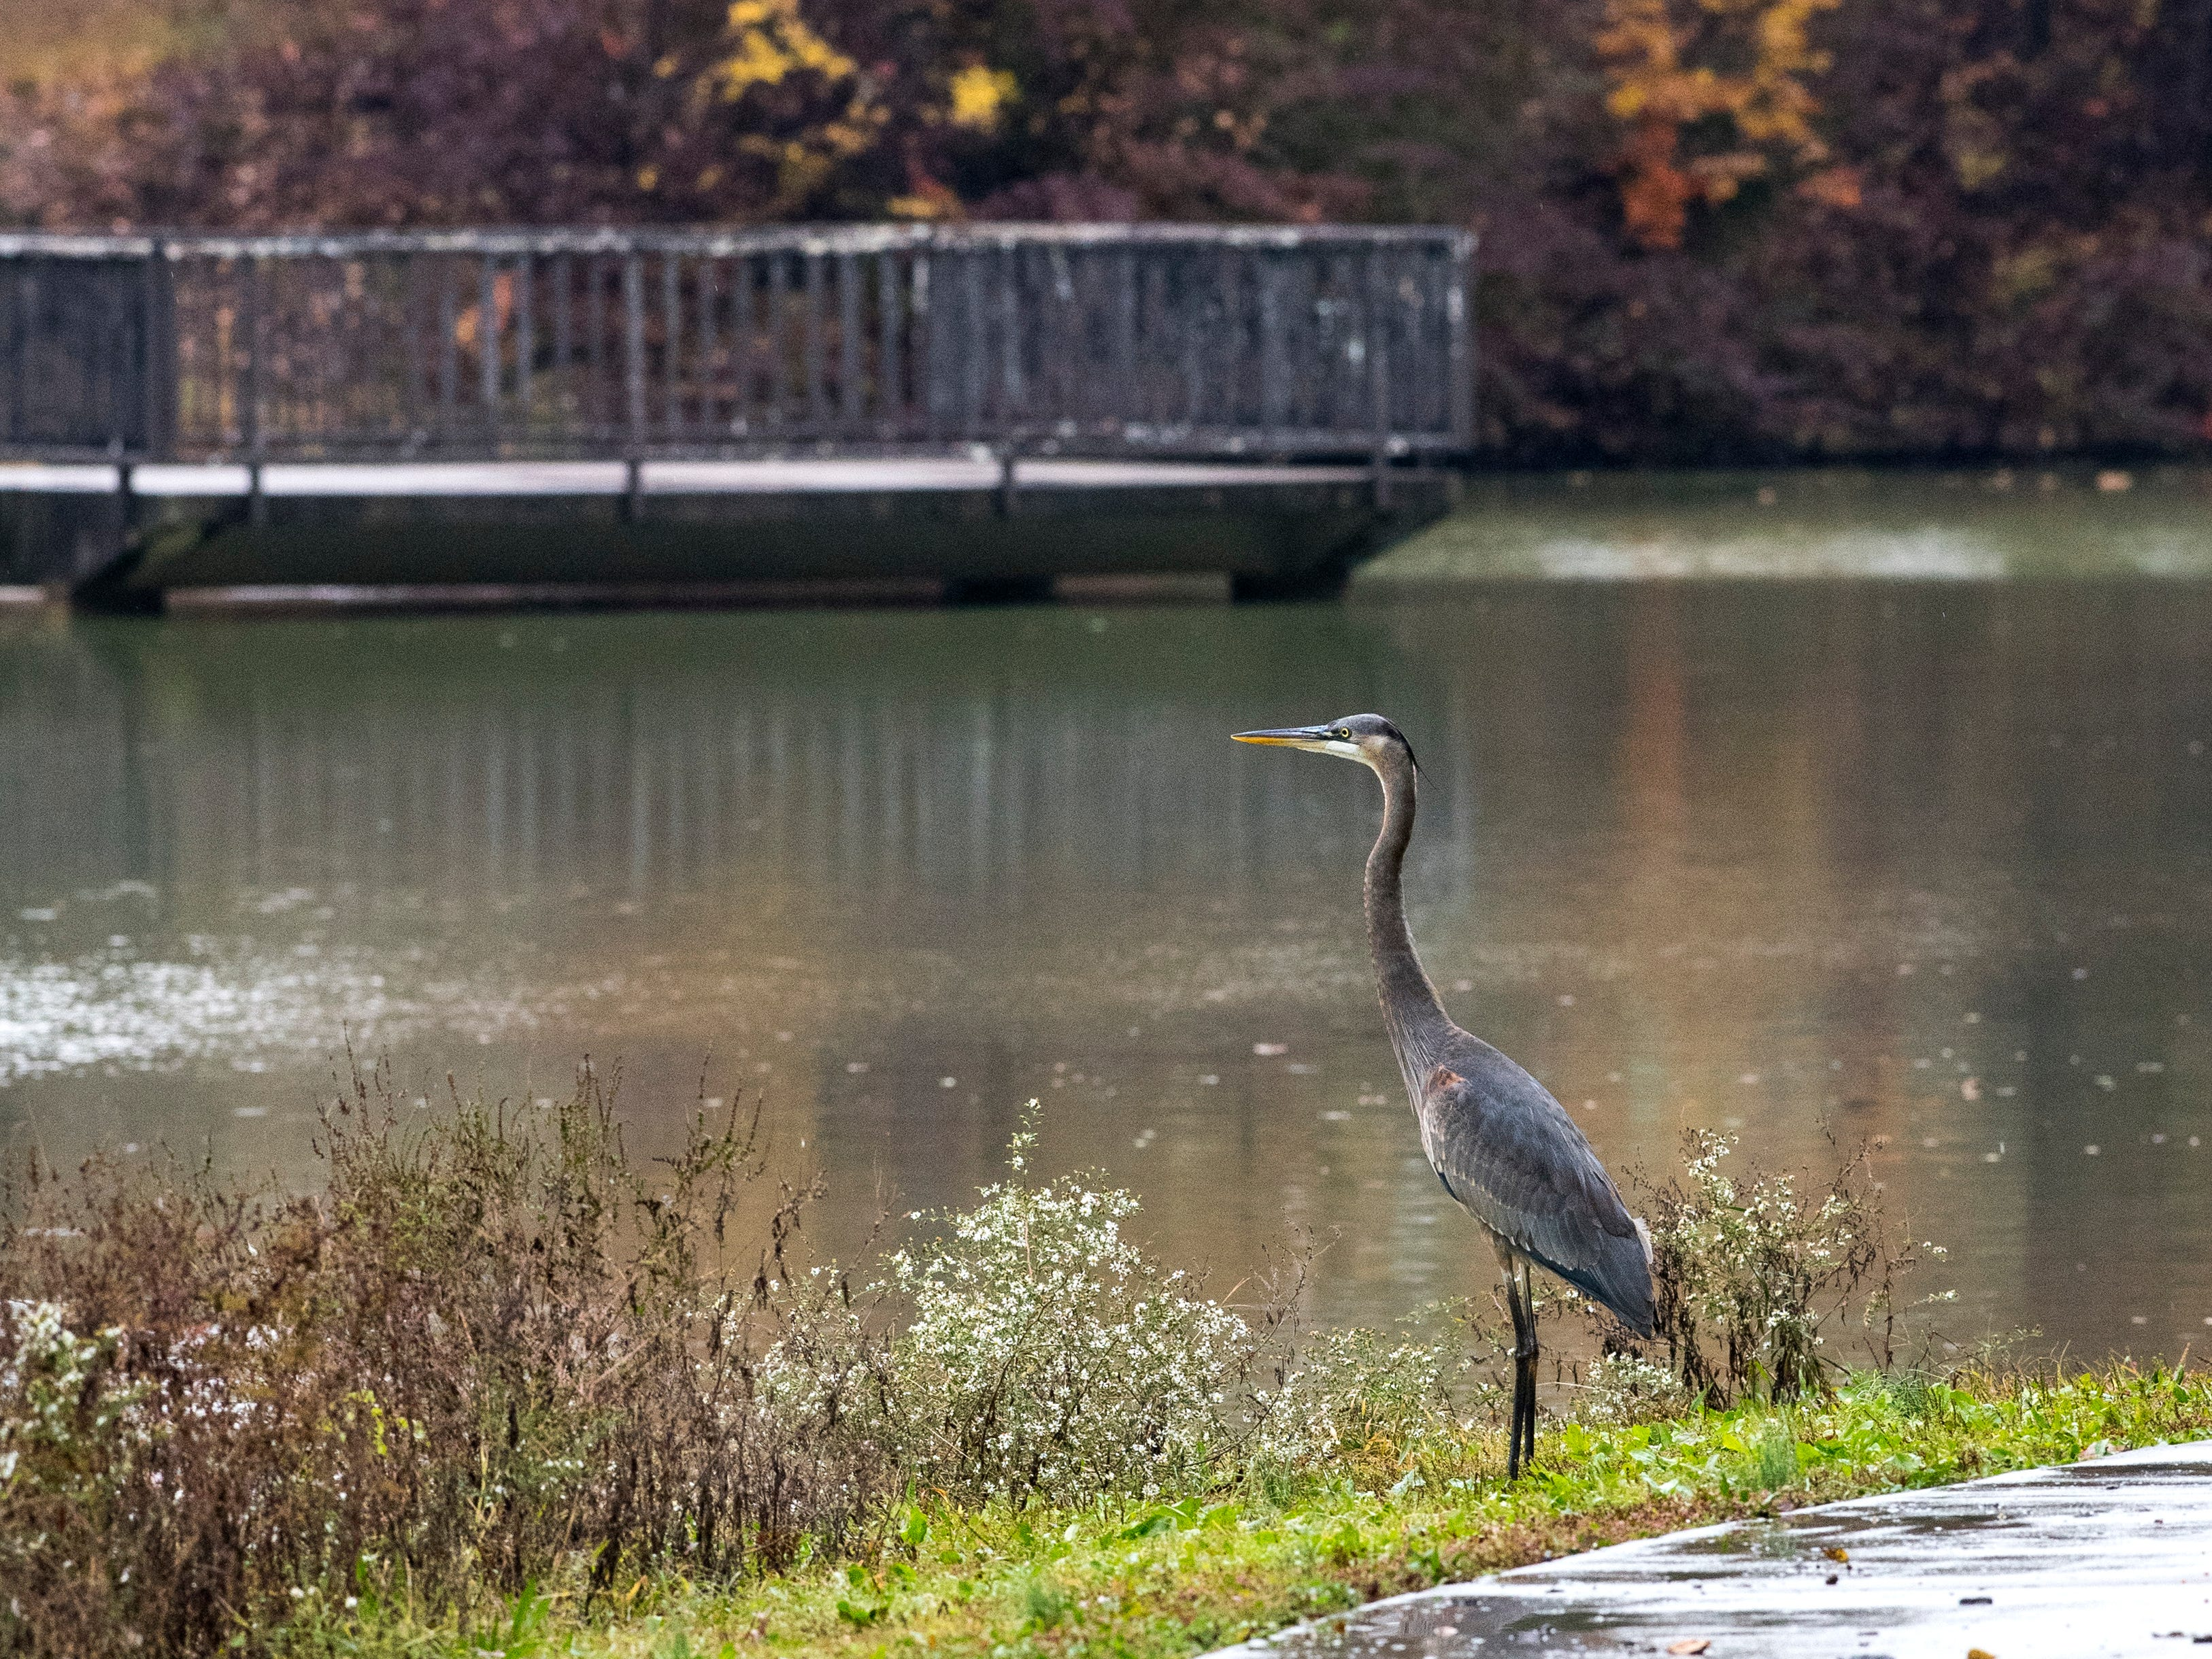 A Great Blue Heron stands on the edge of Evansmeer Lake in Garvin Park, Wednesday morning Oct. 31, 2018.